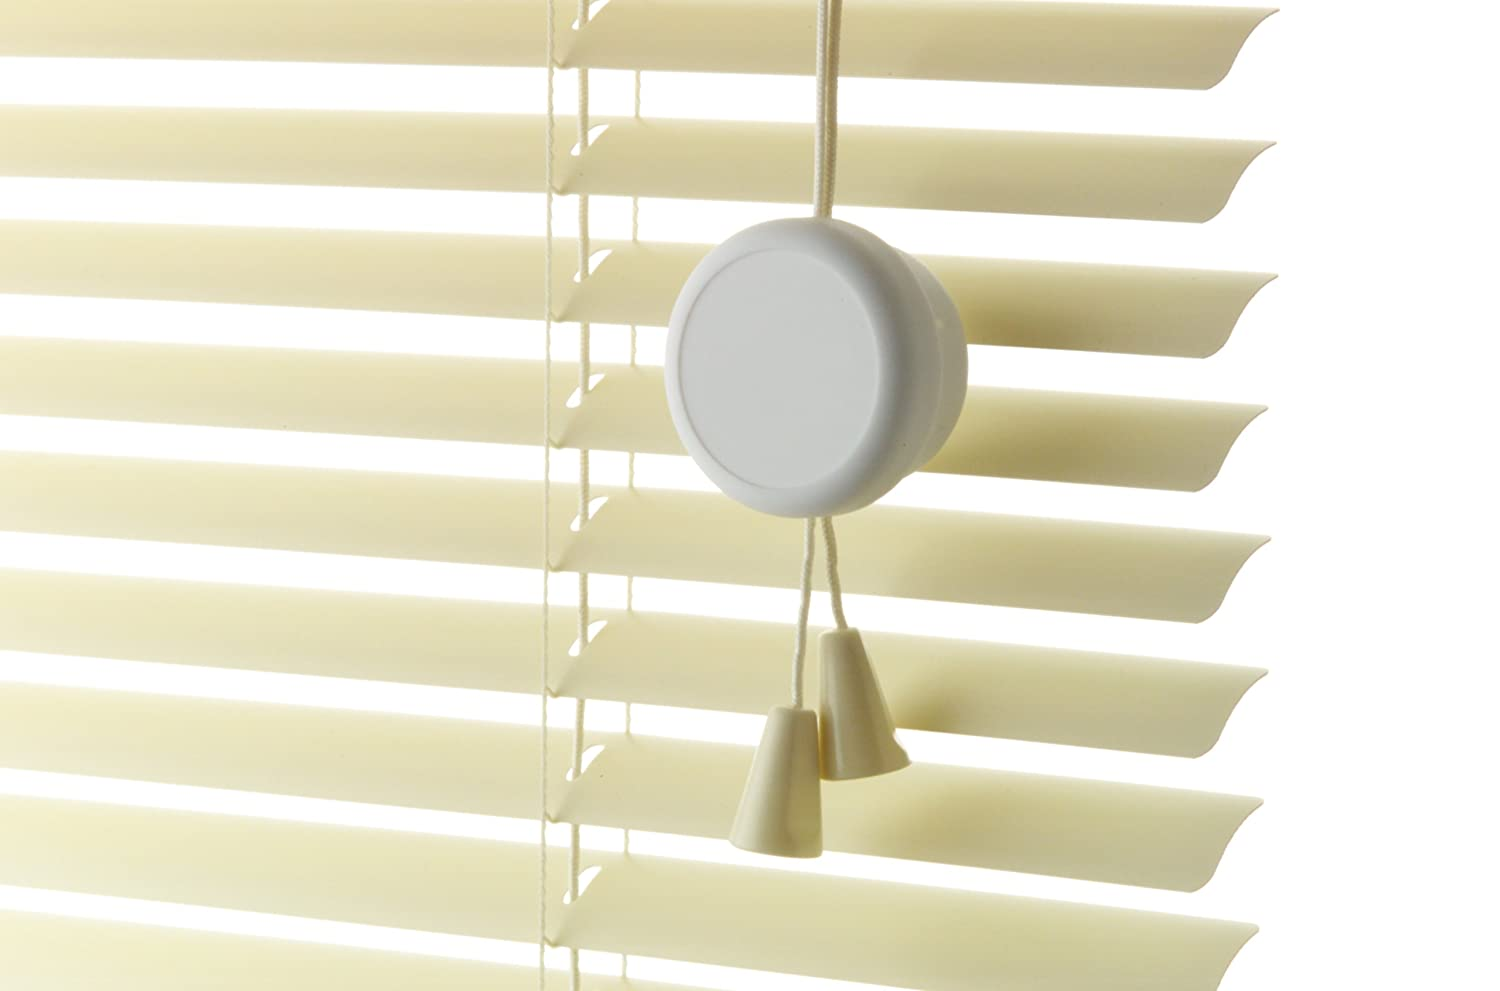 tip child dreambaby watch wind safety cord blind ups youtube blinds